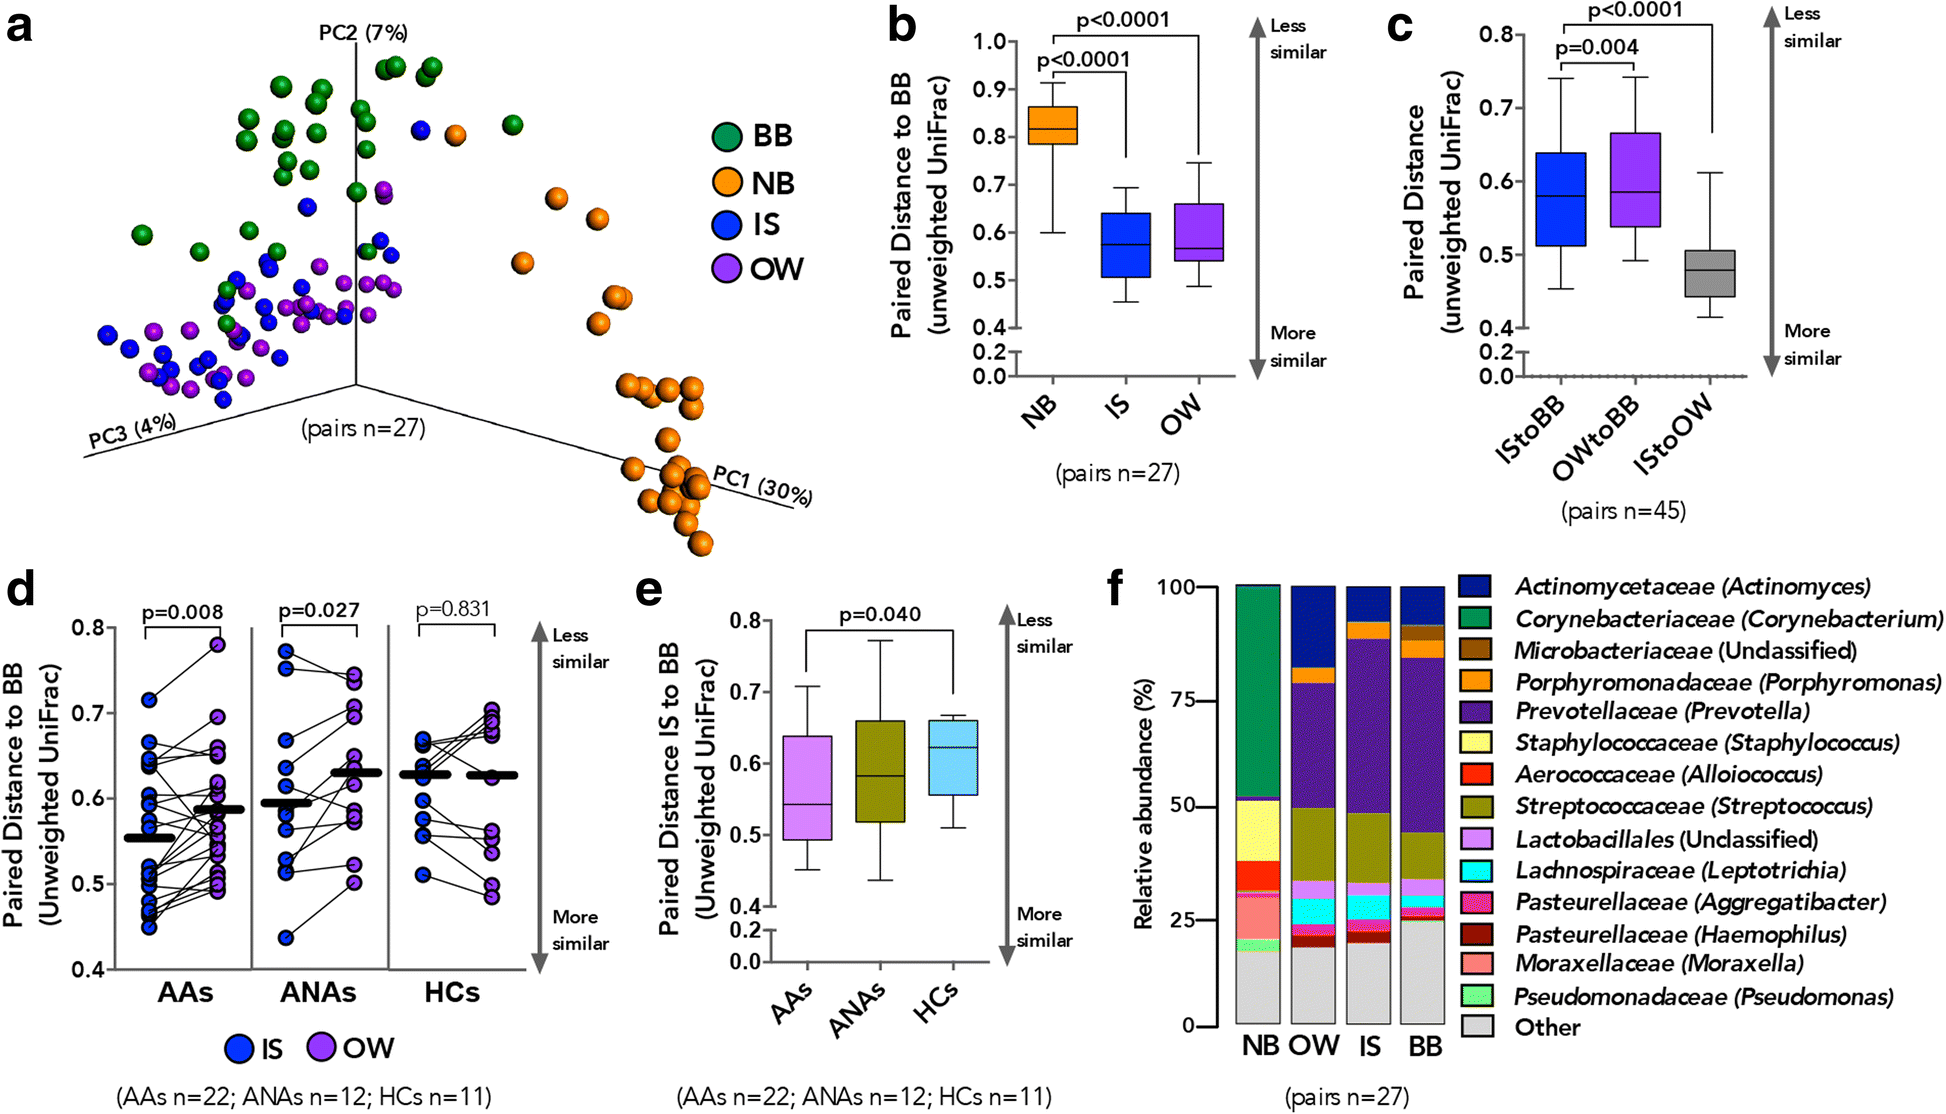 Bacterial Biogeography Of Adult Airways In Atopic Asthma